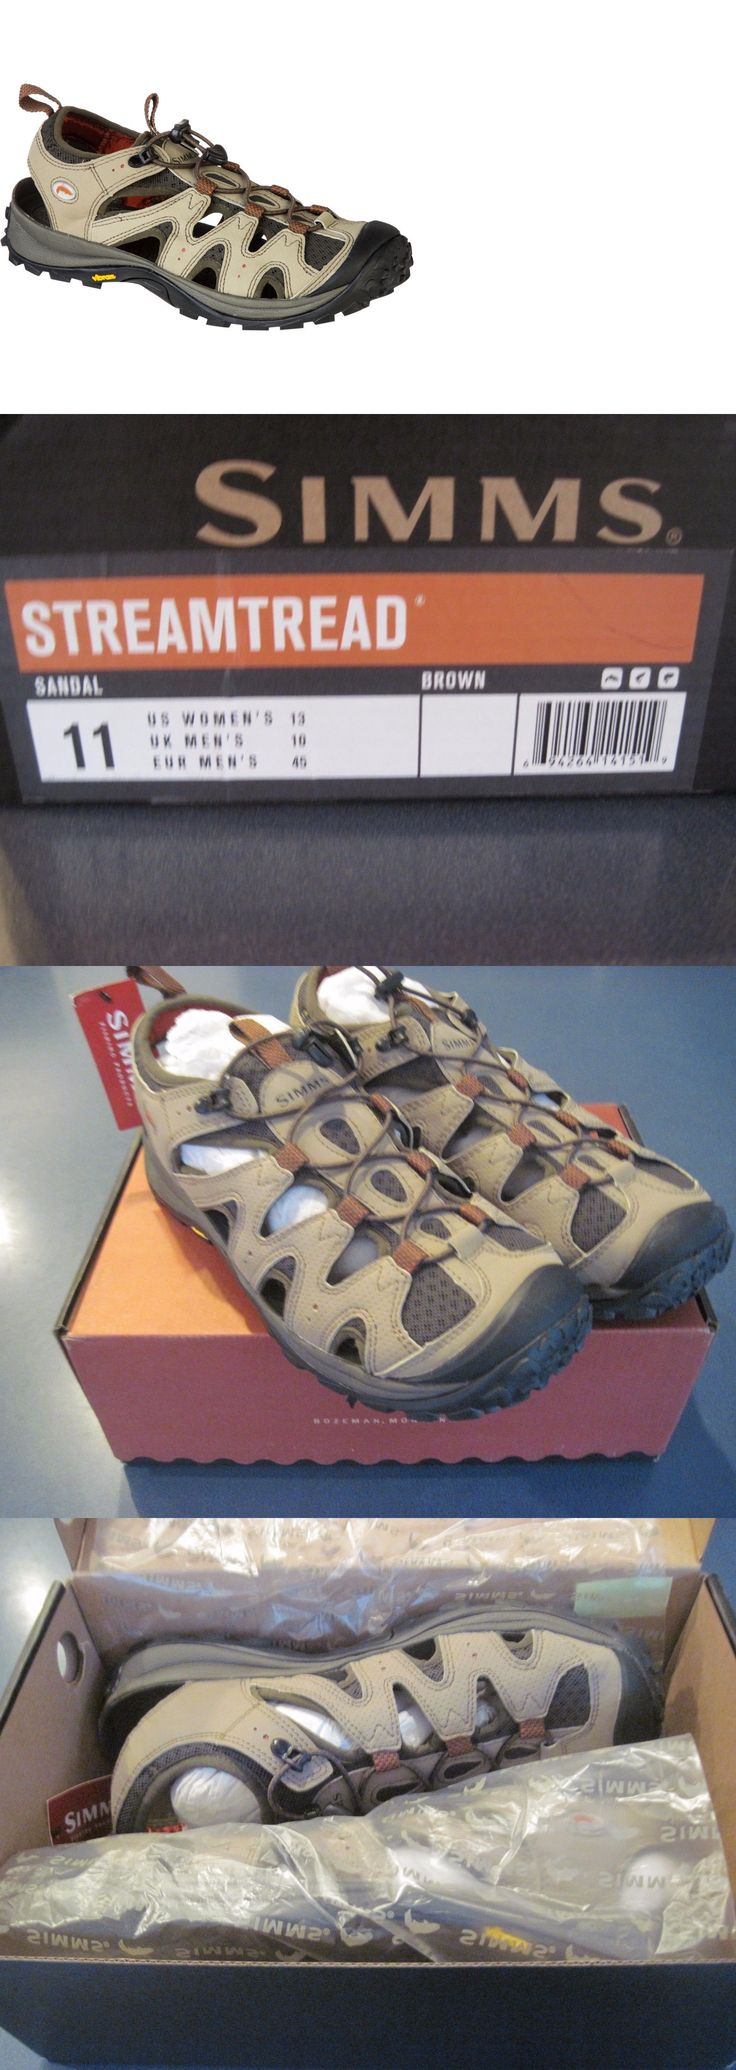 Boots and Shoes 179980: New Simms Streamtread Fly Fishing Wading Sandal Mens Size 11 - Sale - 40% Off BUY IT NOW ONLY: $69.0